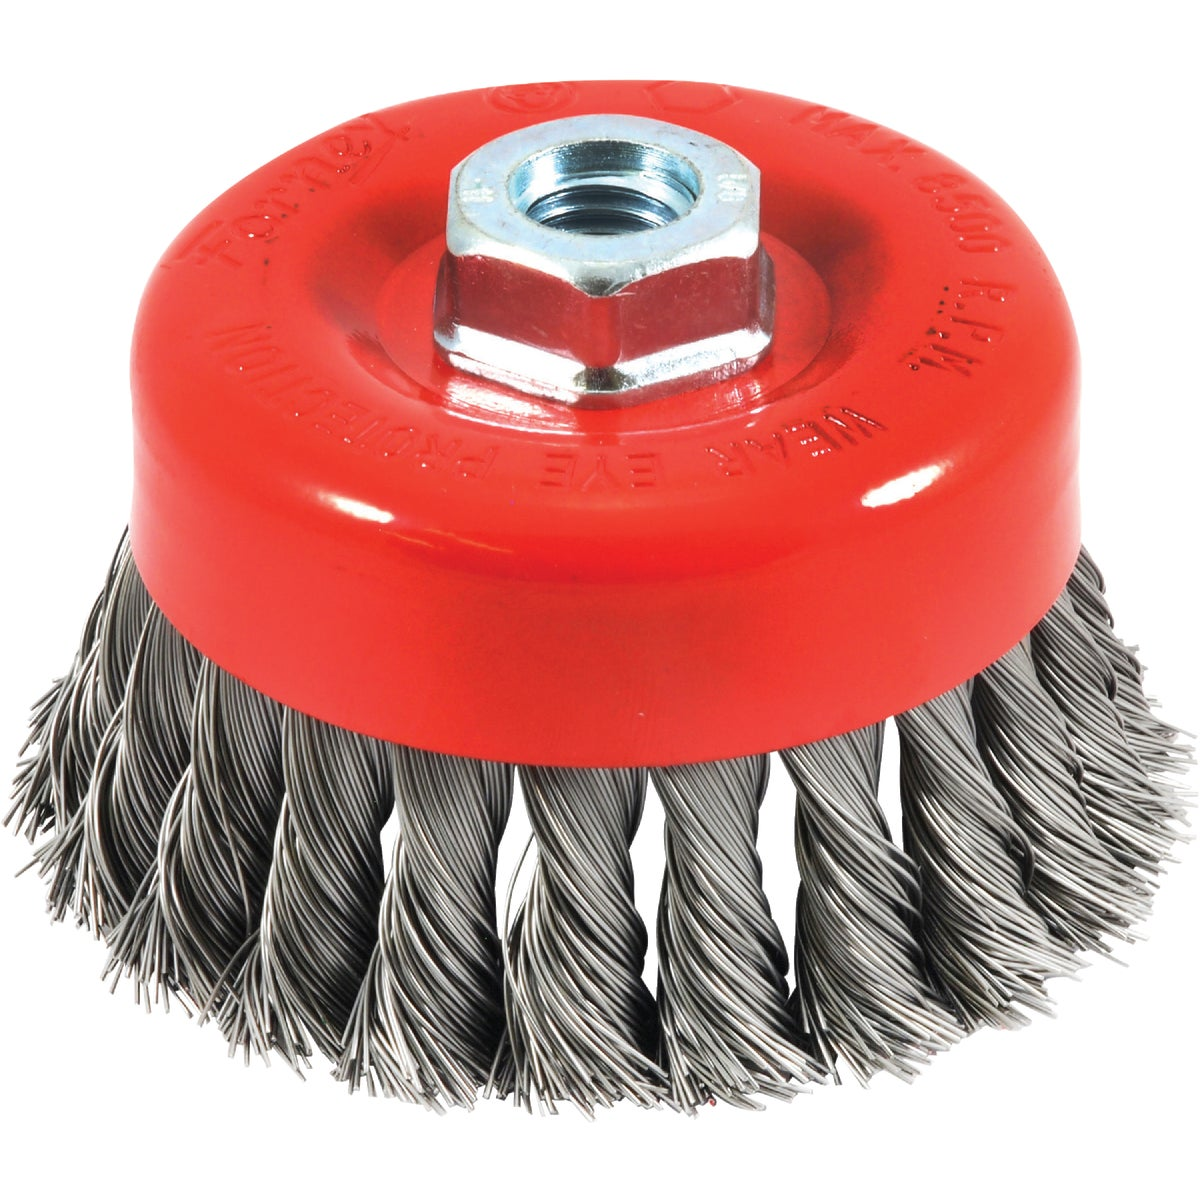 """4"""" KNOTTED CUP BRUSH - 72753 by Forney Industries"""